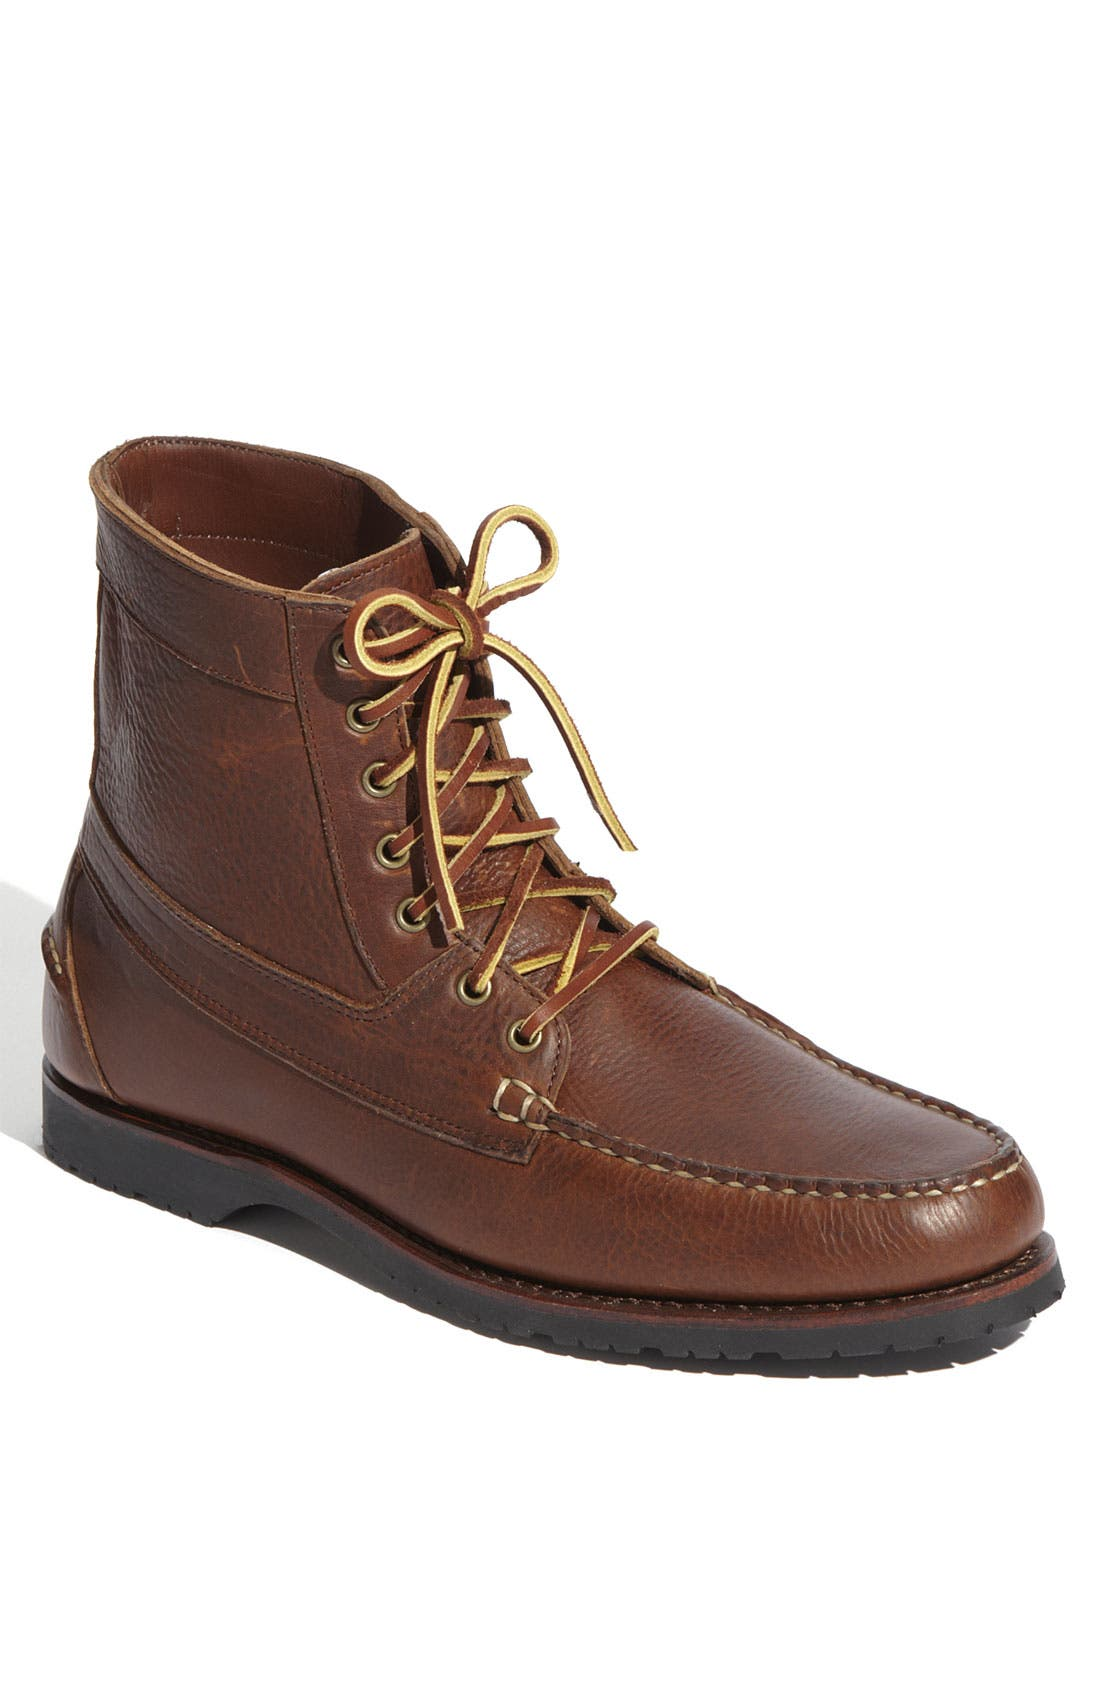 Alternate Image 1 Selected - Allen Edmonds 'Yuma' Boot